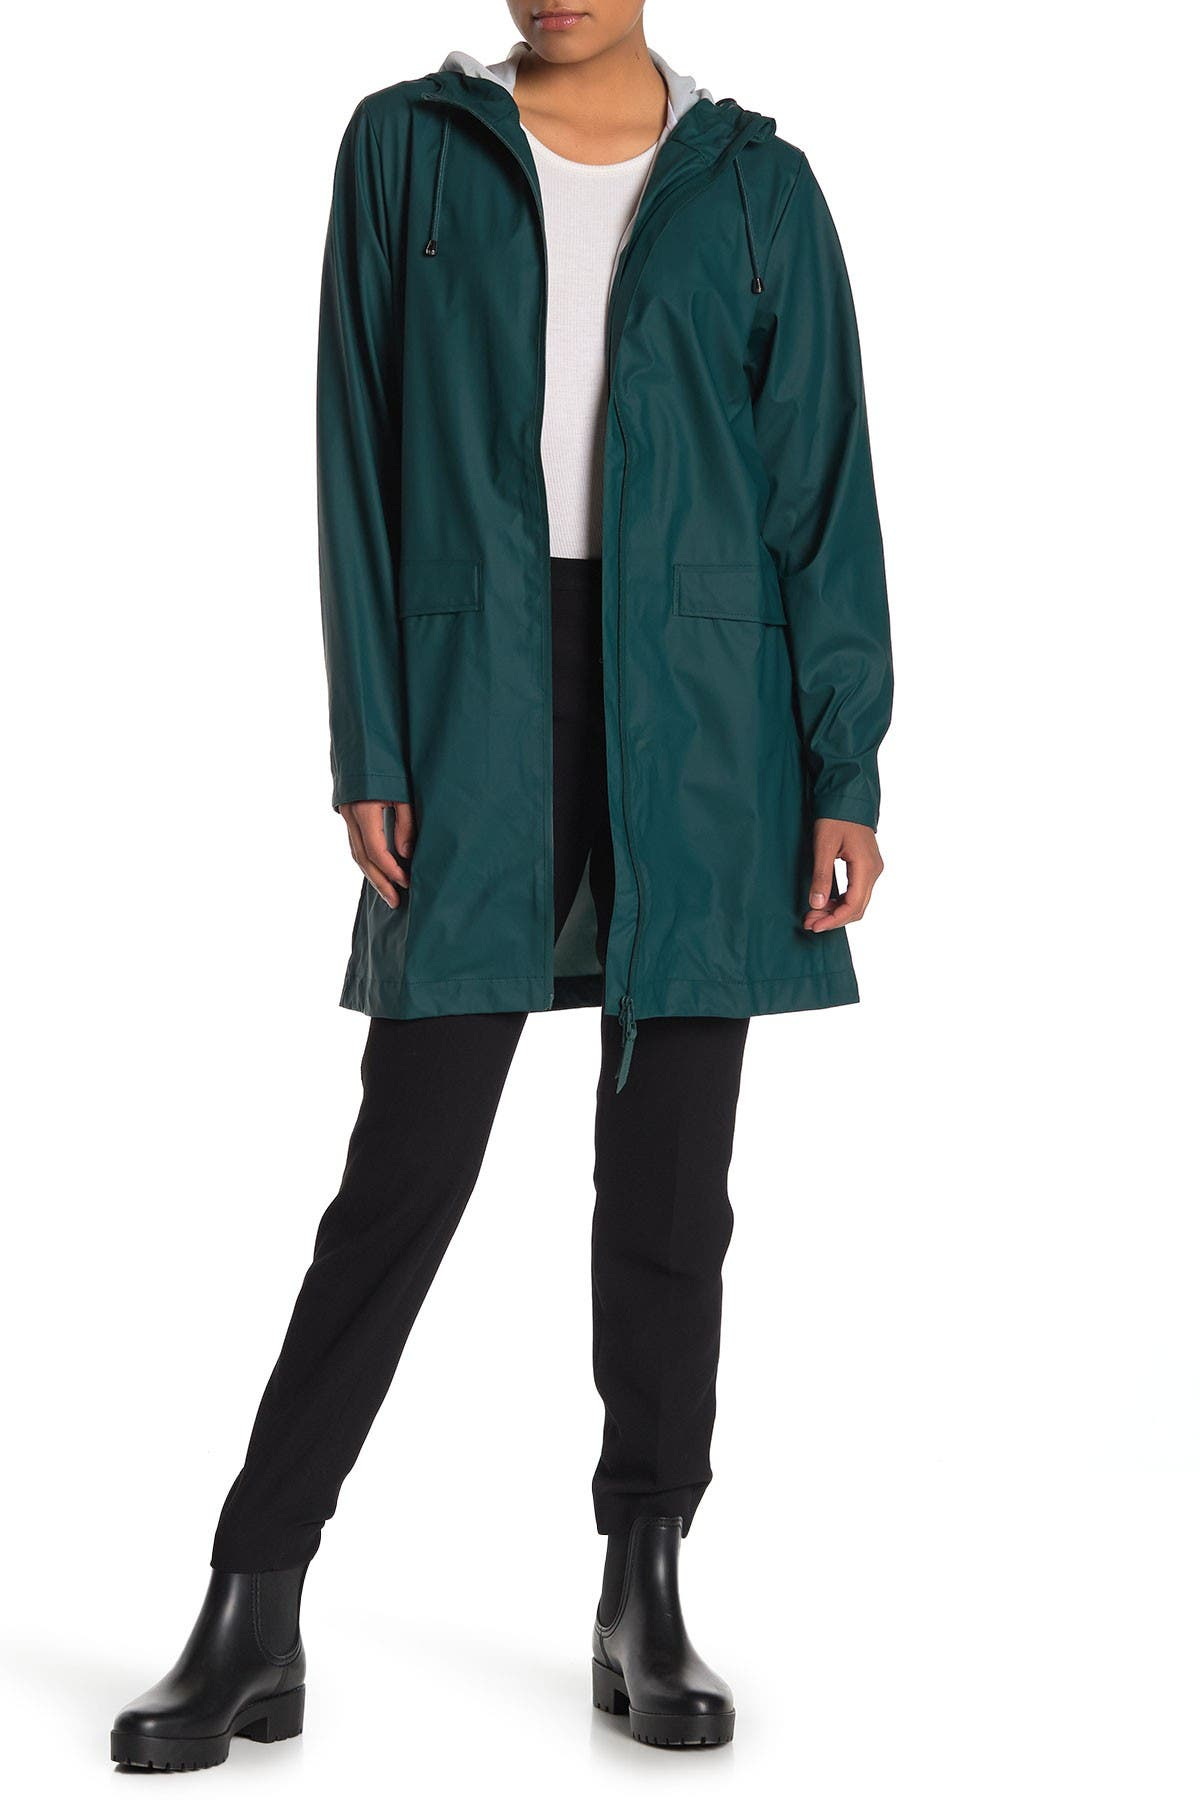 Image of Rains Hooded Waterproof Jacket